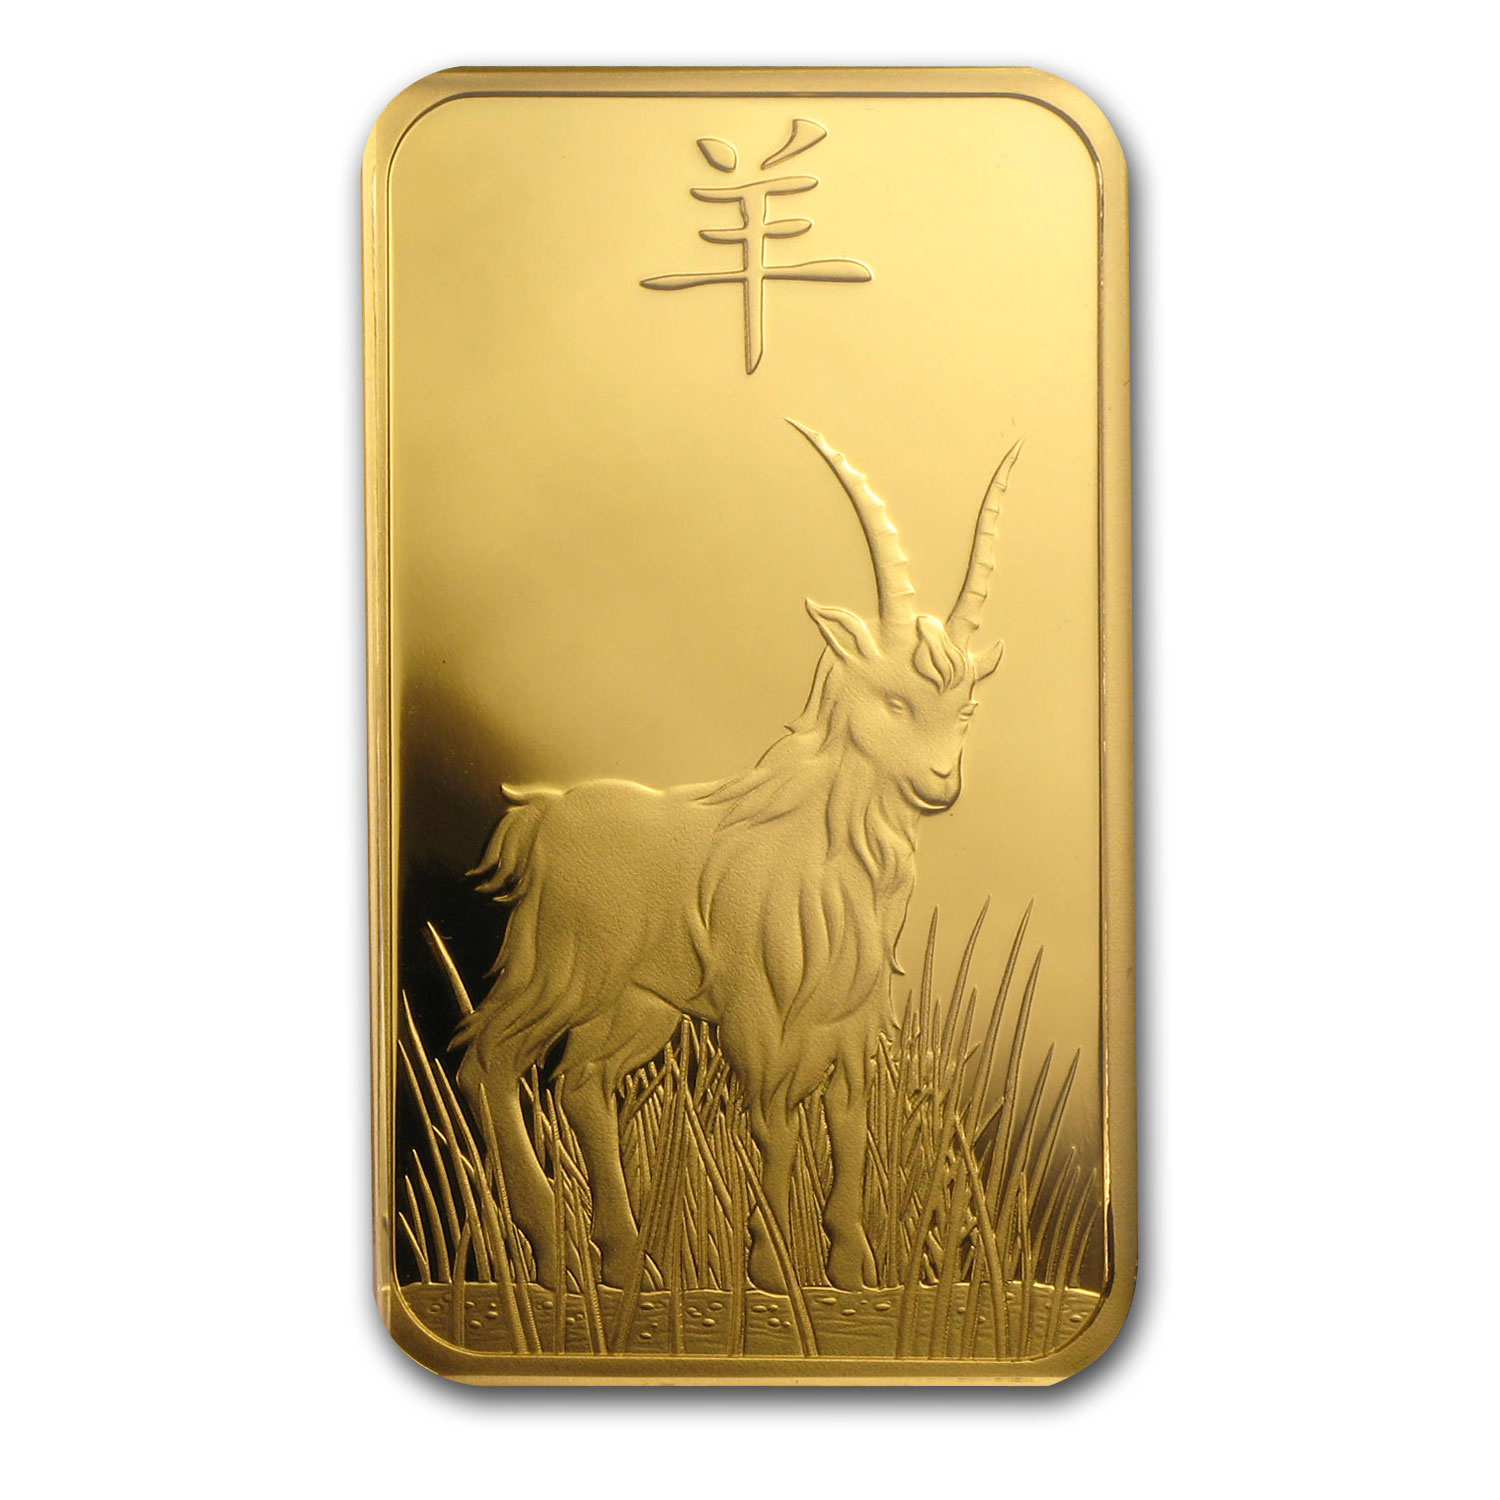 1 oz Gold Bar - PAMP Suisse Year of the Goat (In Assay)